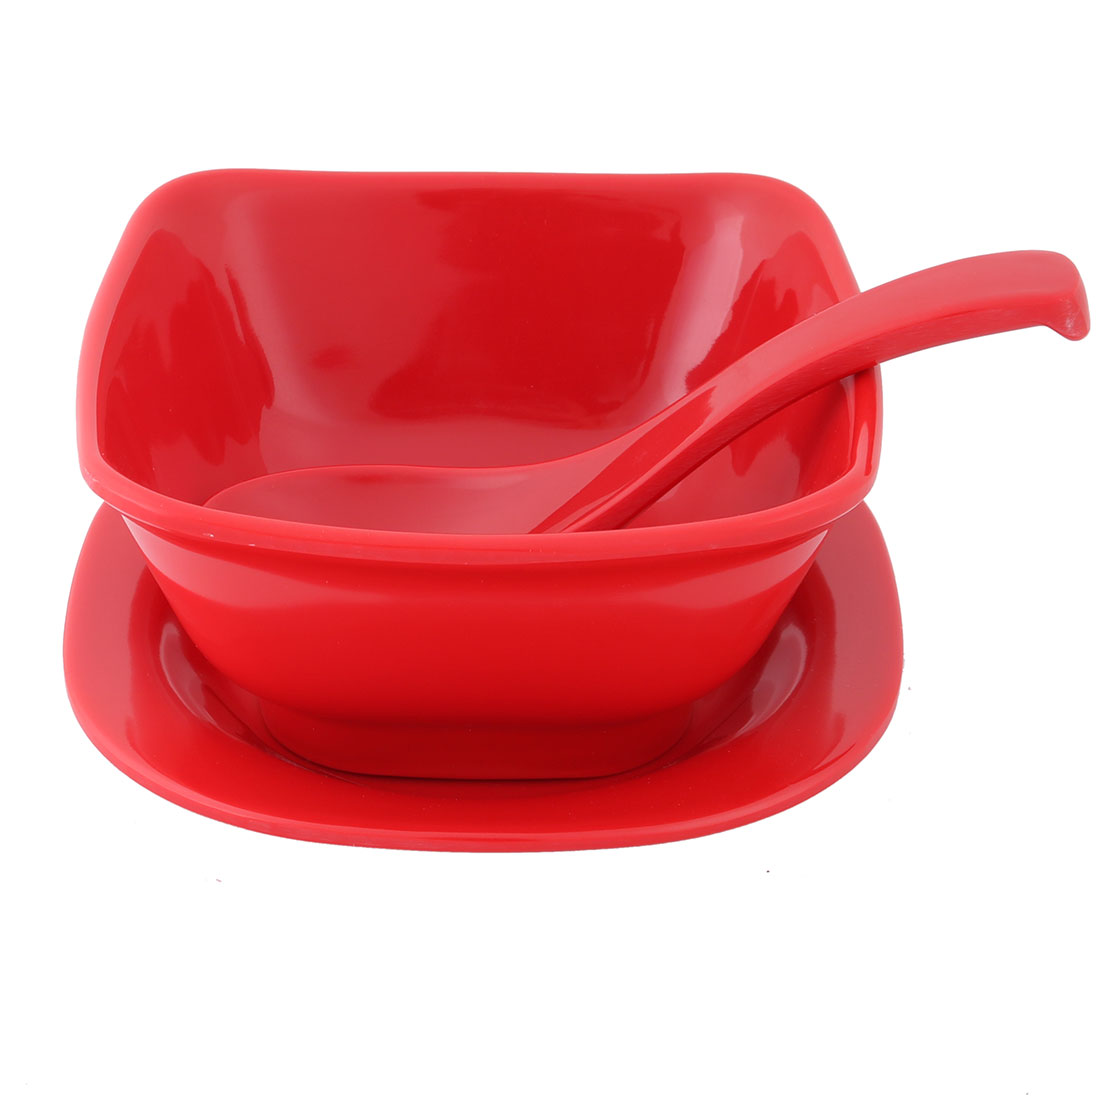 Home Kitchen Plastic Dinnerware Tableware Serving Spoon Bowl Plate Red 3 in 1